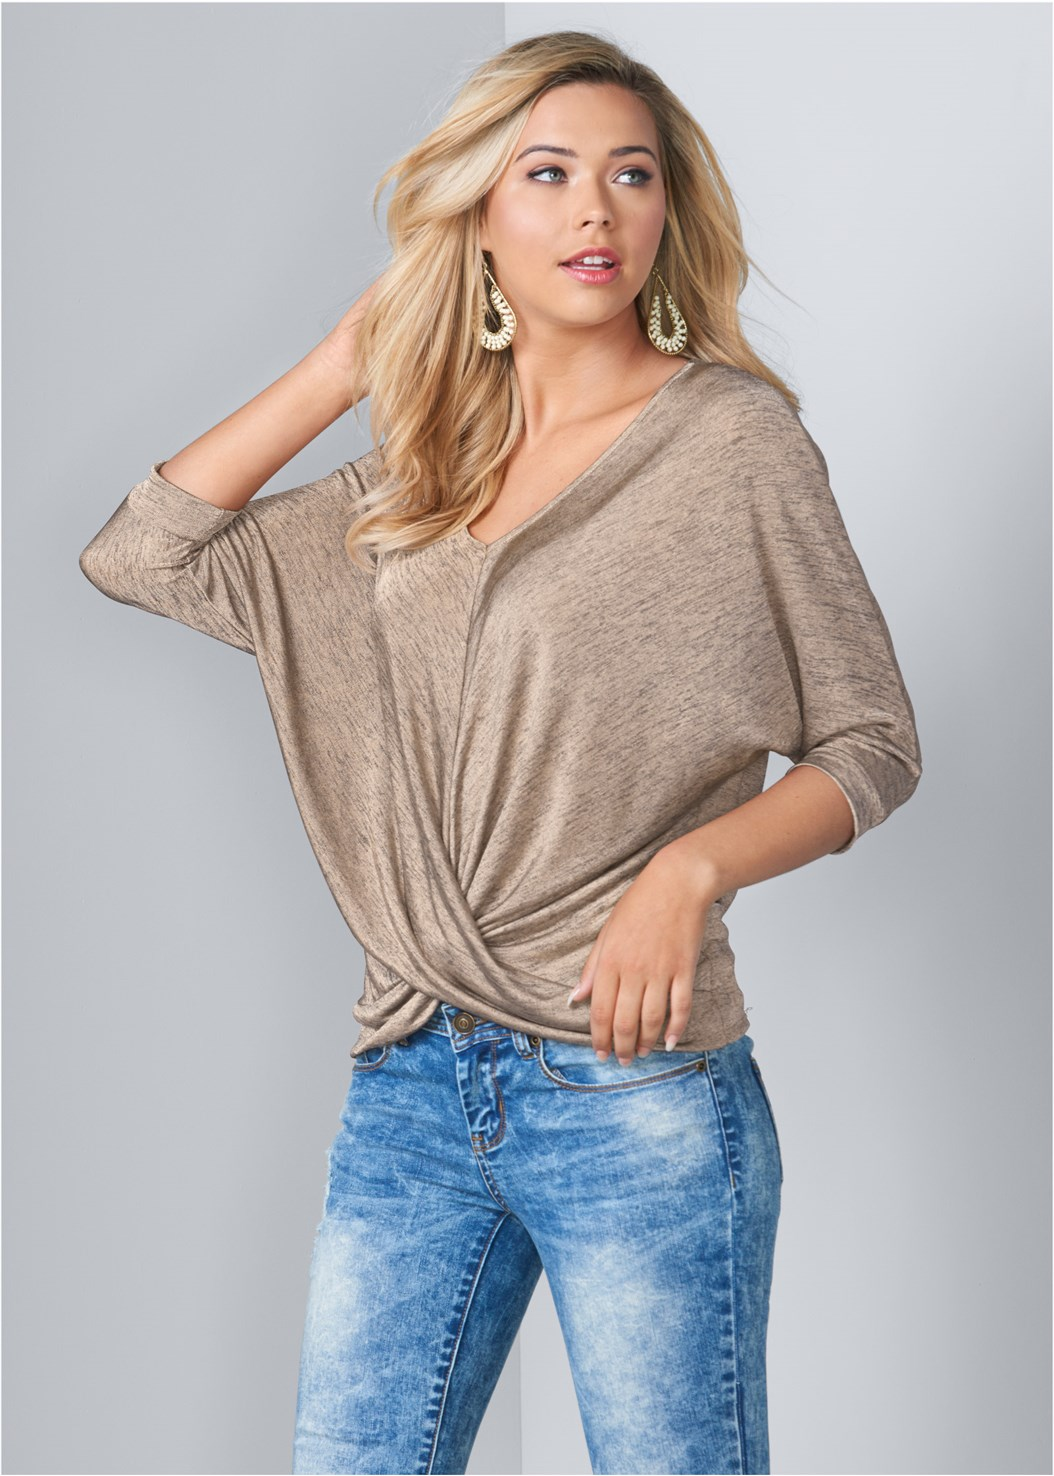 Twist Detail Top,Acid Wash Jeans,Naked T-Shirt Bra,Knotted Slouchy Boots,Sweater Buckle Bootie,Beaded Drop Earrings